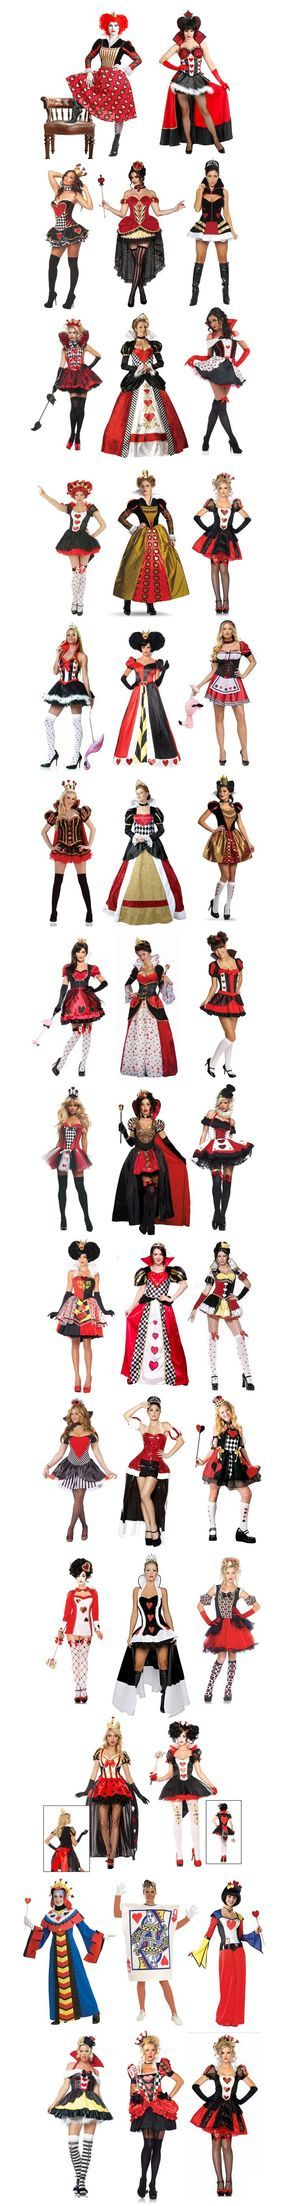 The Queen of Hearts. She may not be the most popular Disney Villains, but she definitely has the most Halloween costumes! Here are forty -- that's right --- FORTY different Queen of Hearts costumes -- and there are more out there! Disney Villains Halloween Theme Party & Decoration Ideas: